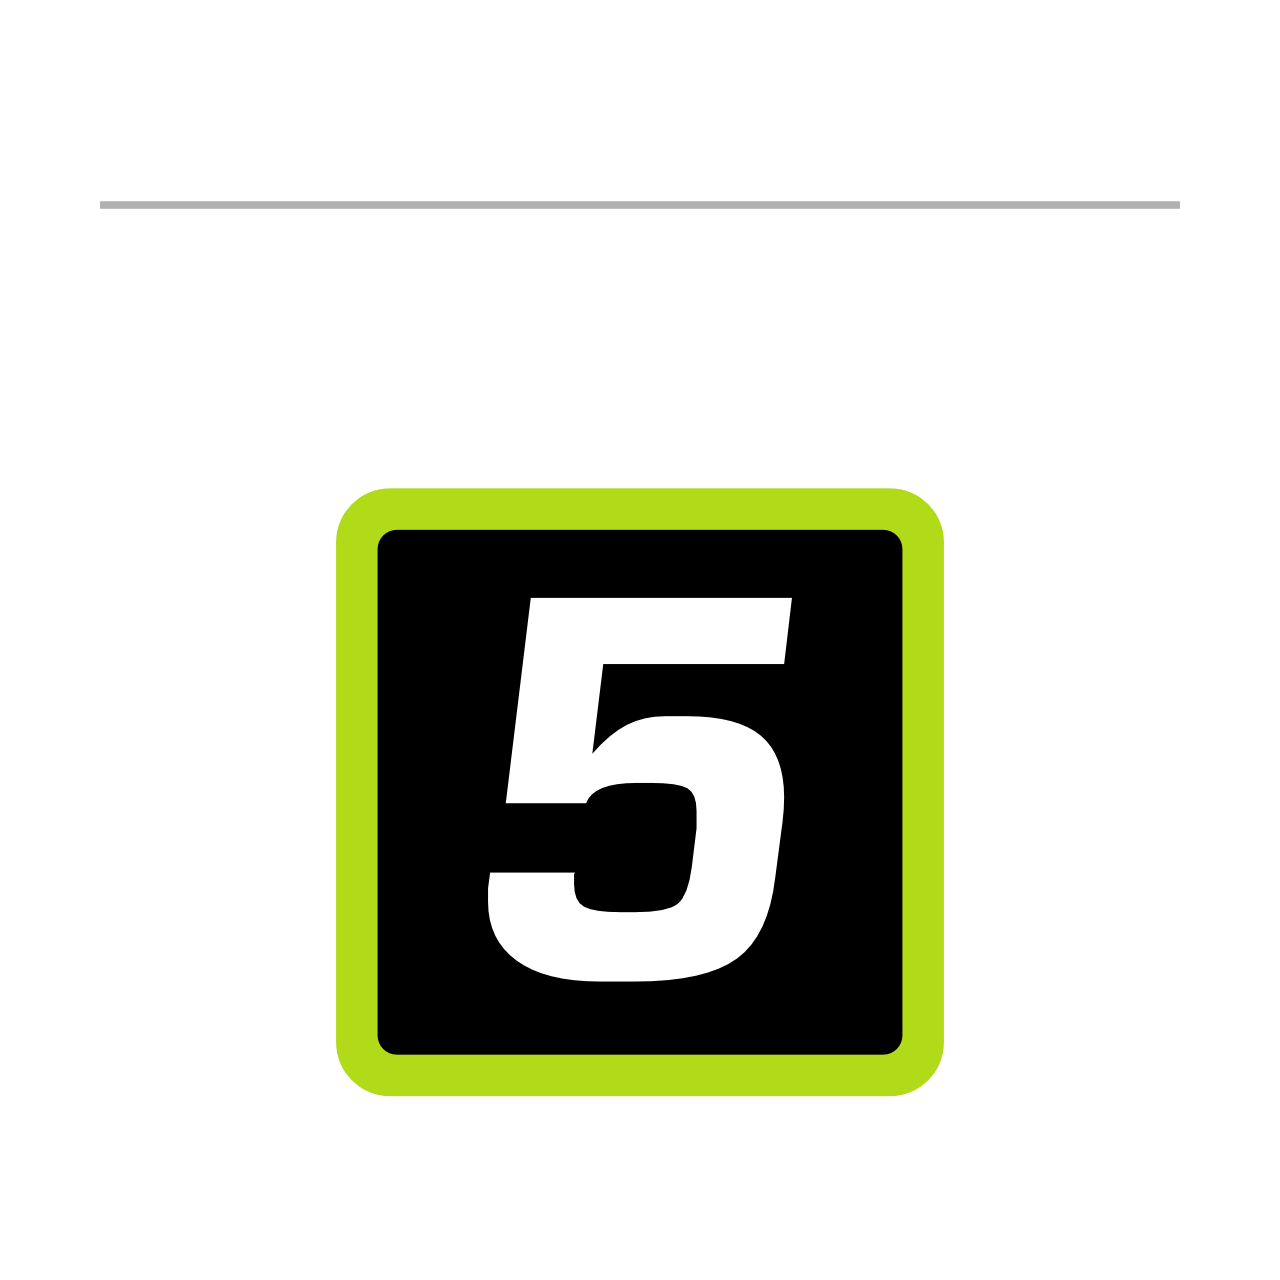 MADRIX 5 Software Update